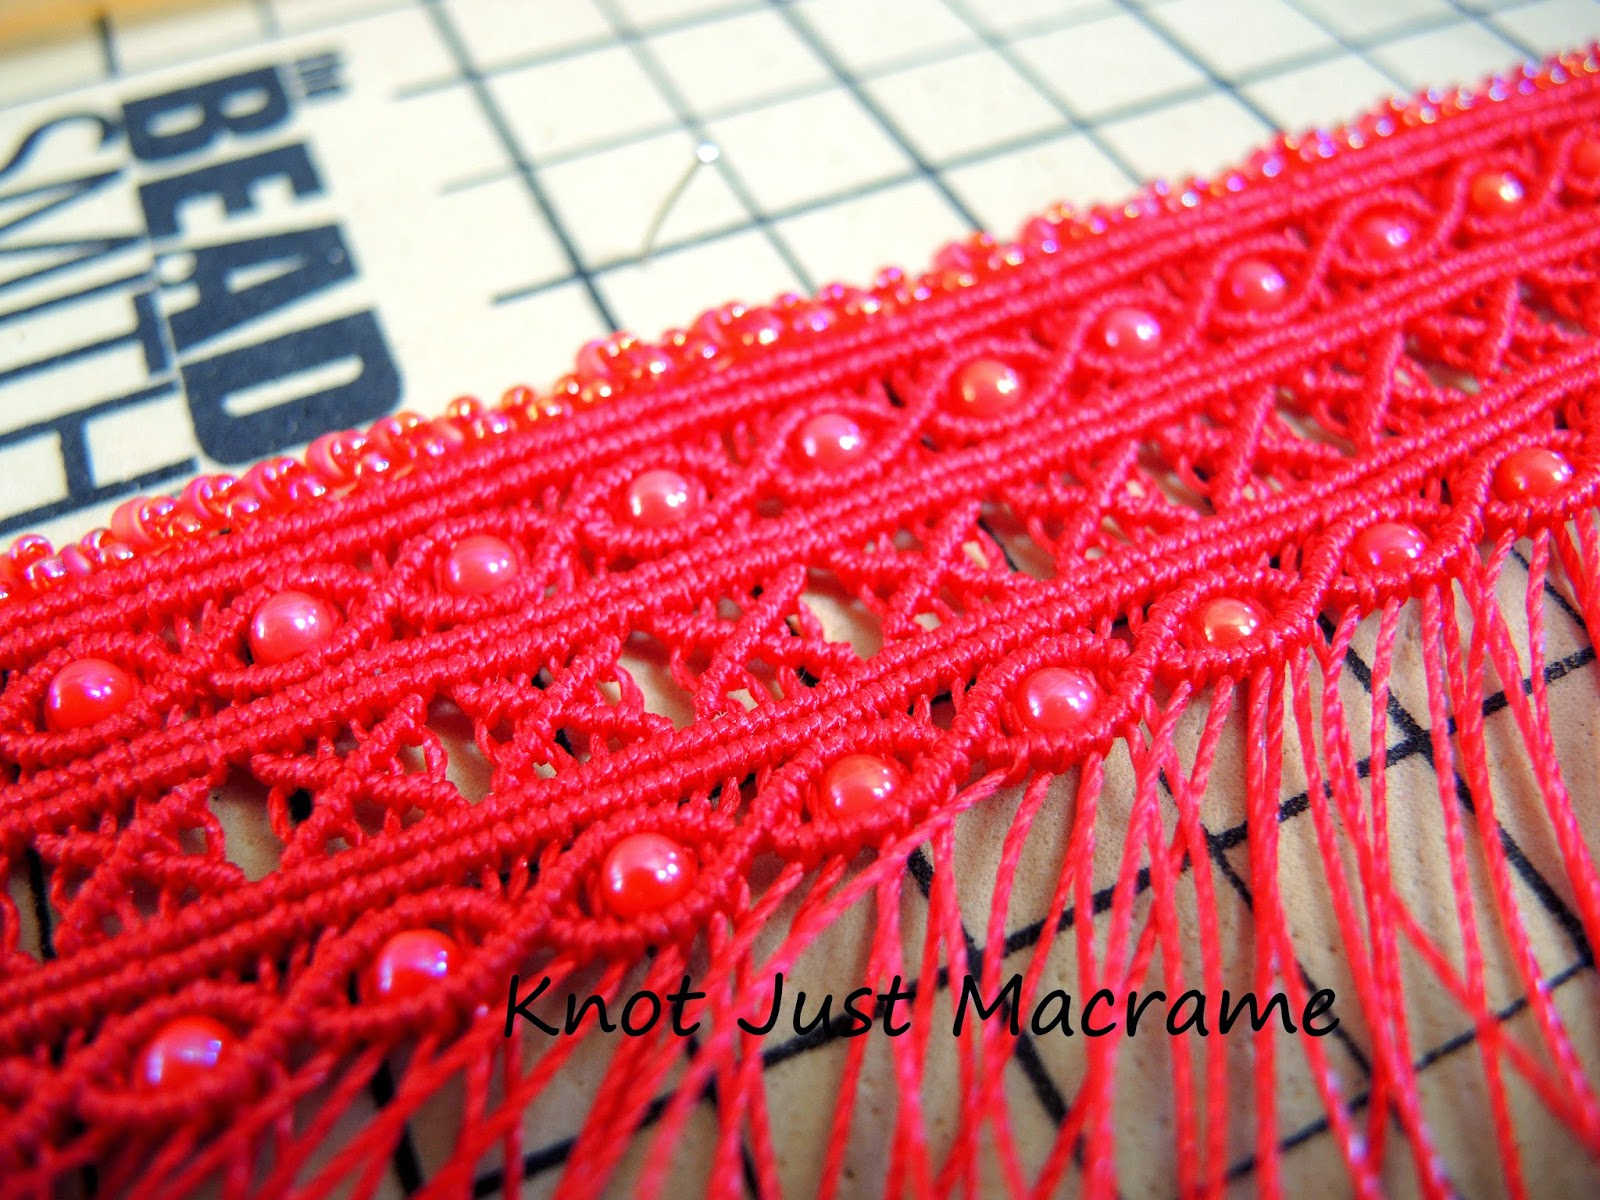 Micro macrame cuff design from Knot Just Macrame.